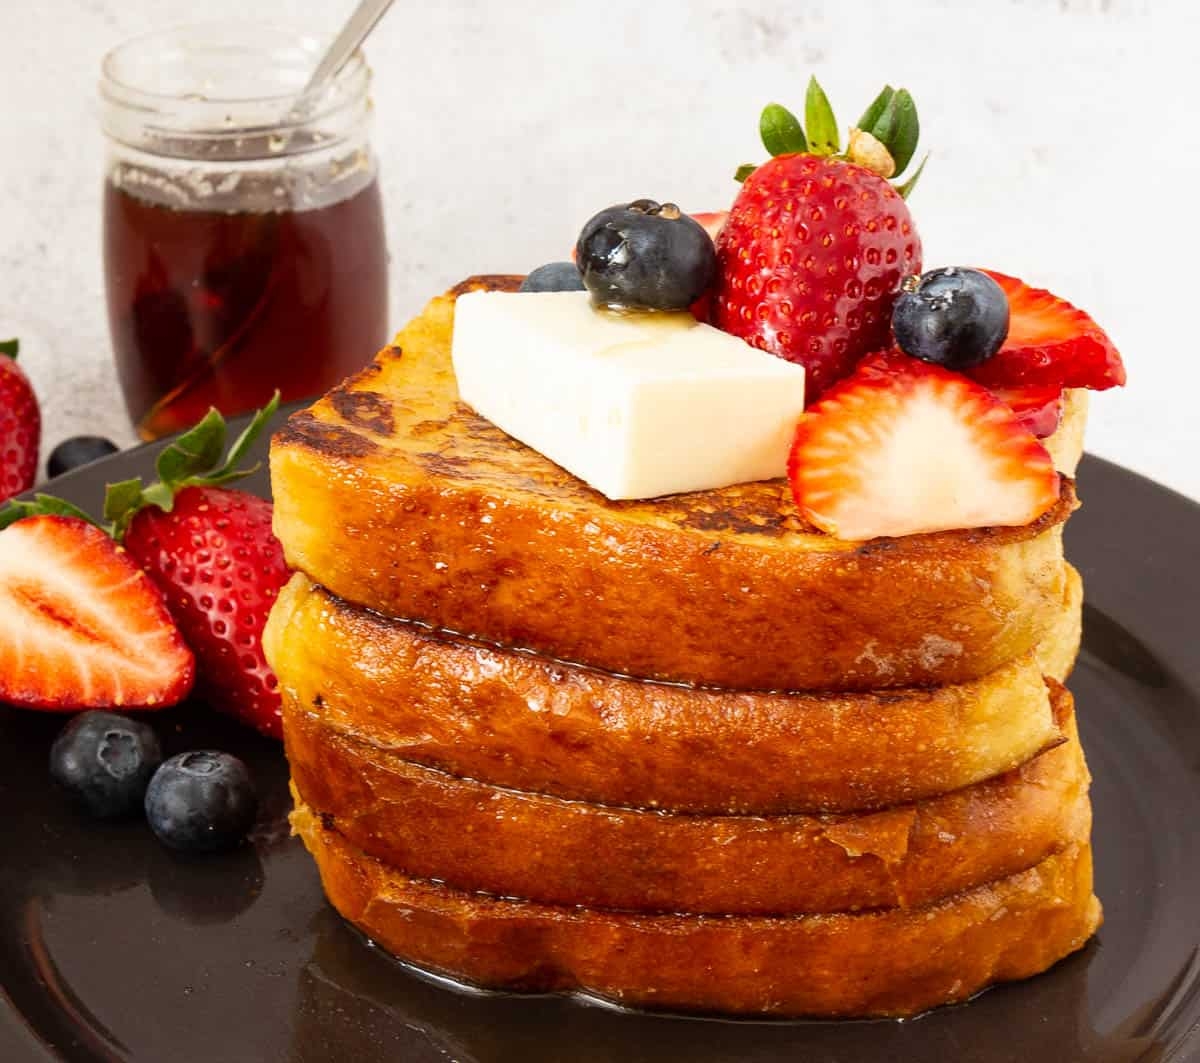 Stack of French toast on a plate with butter and fresh fruits